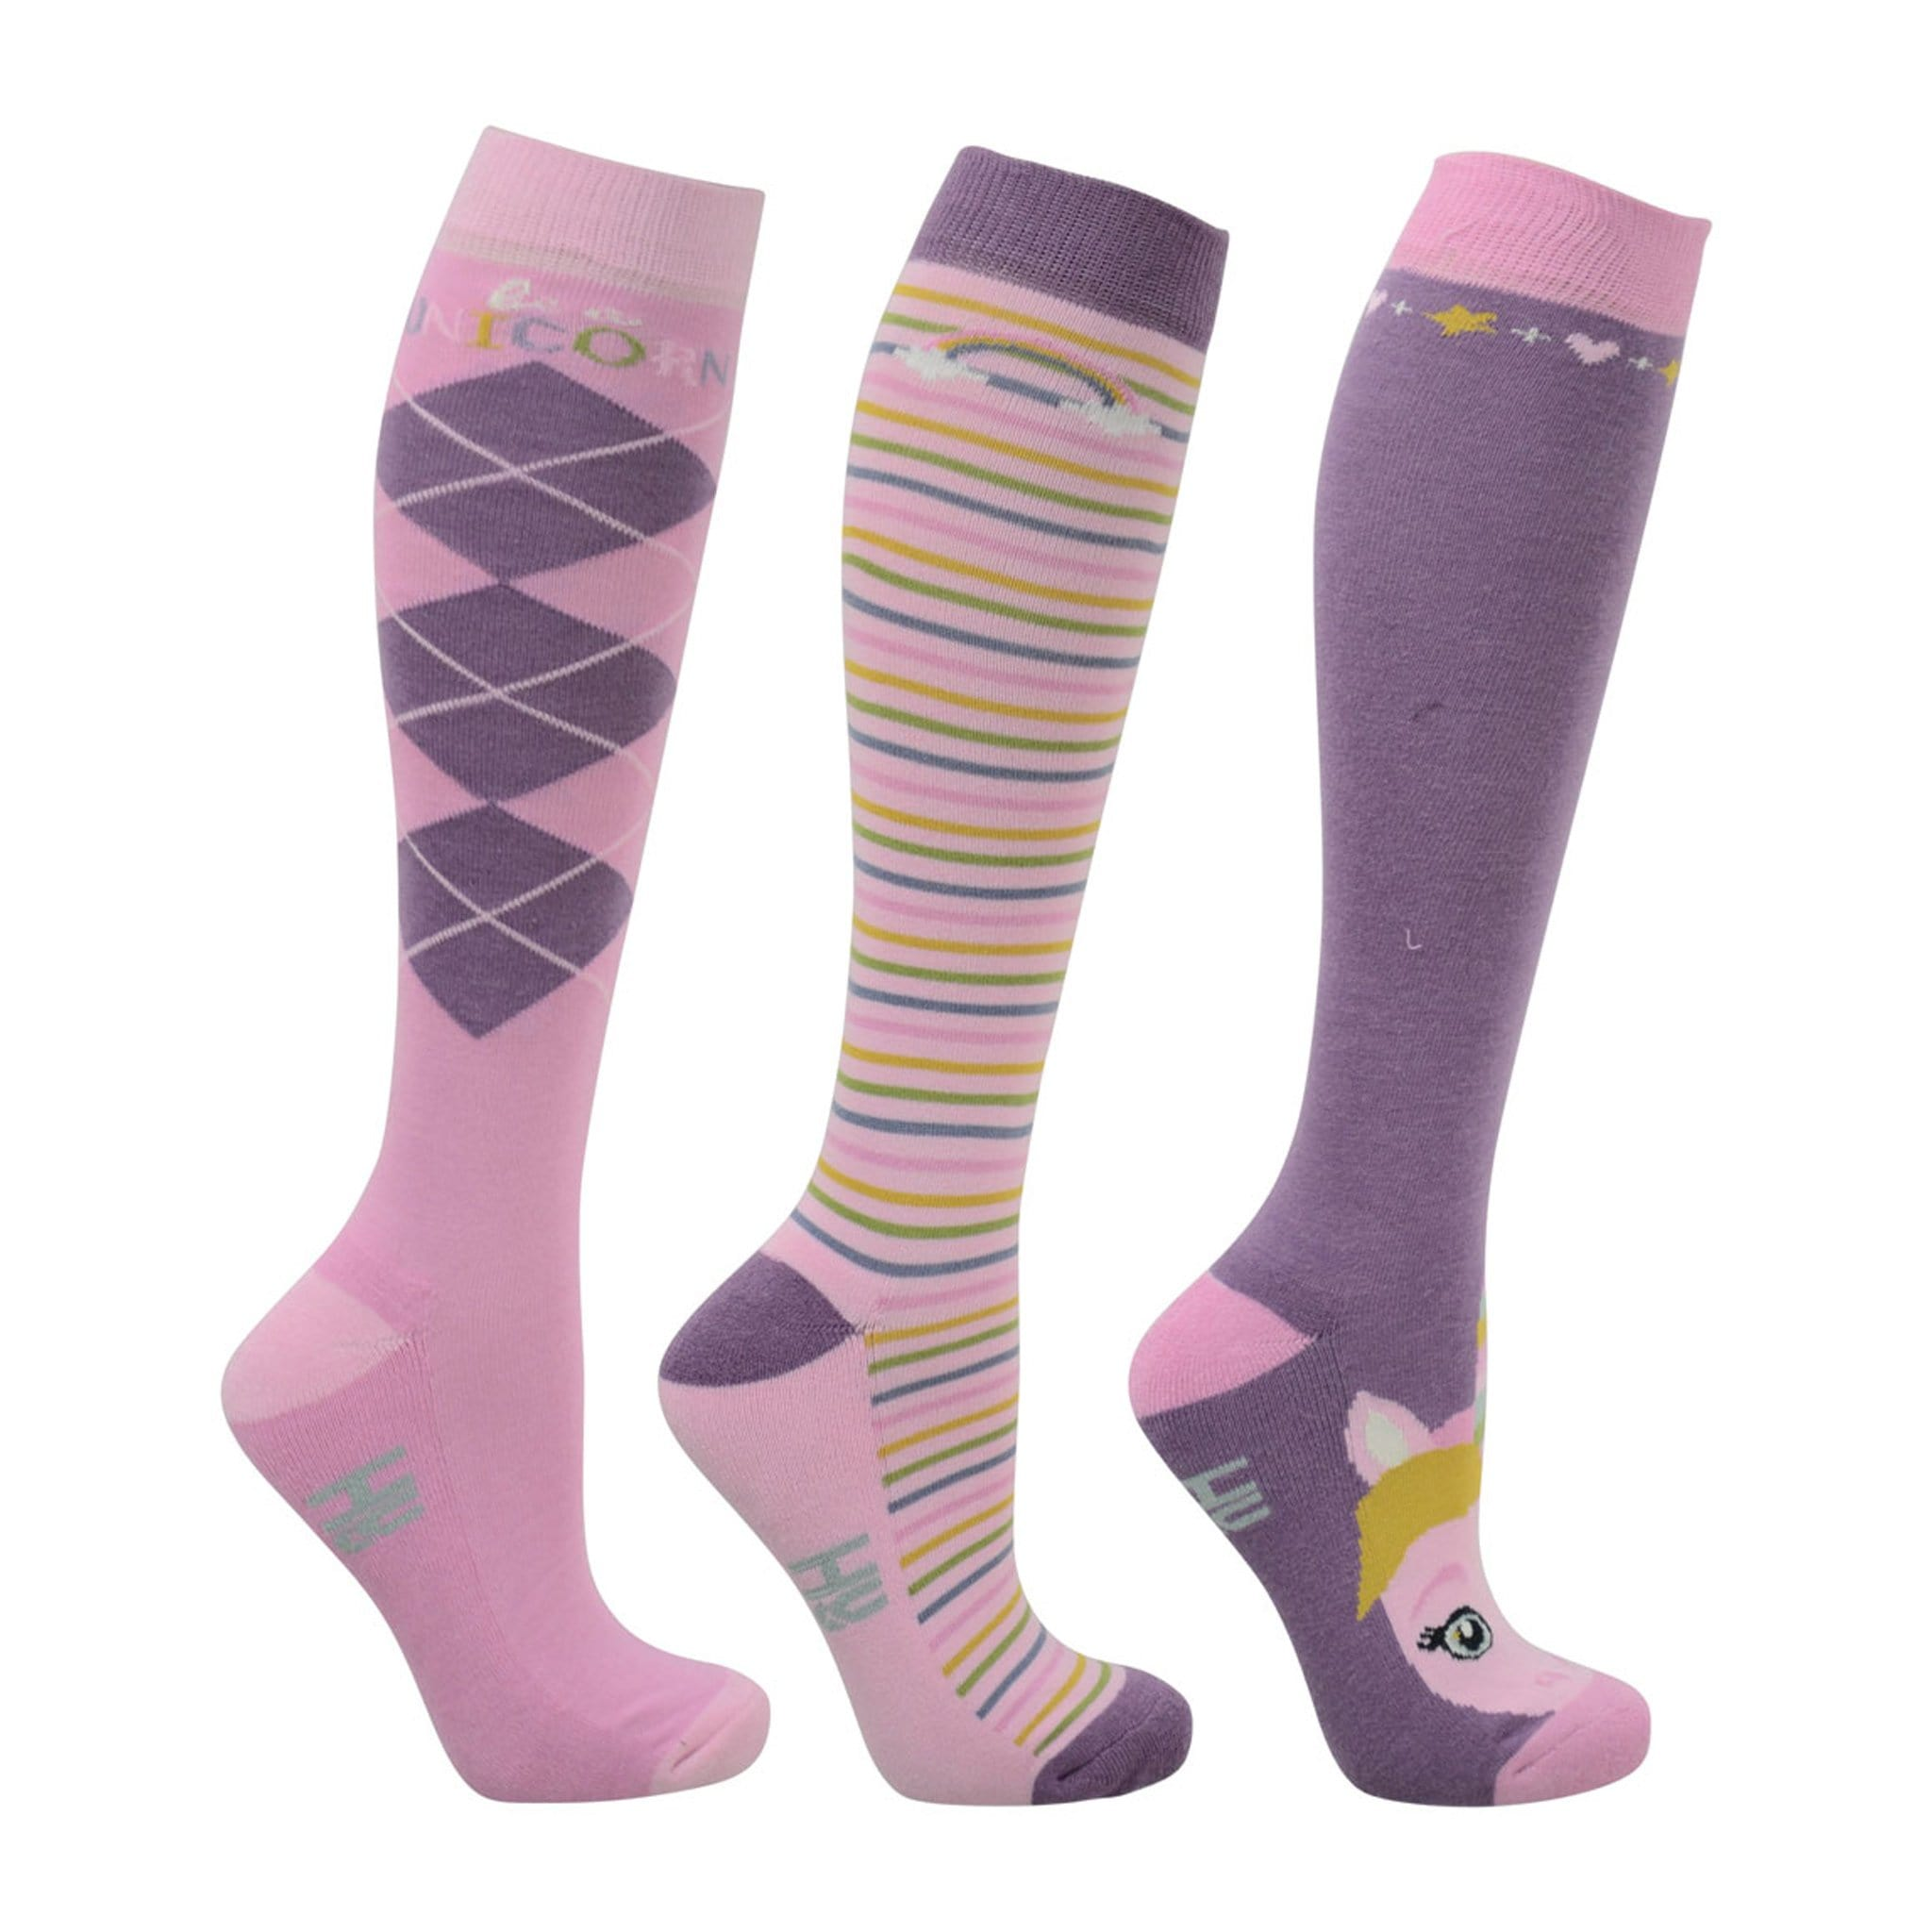 HyFASHION Little Unicorn Riding Socks 3 Pack Adult 20819.